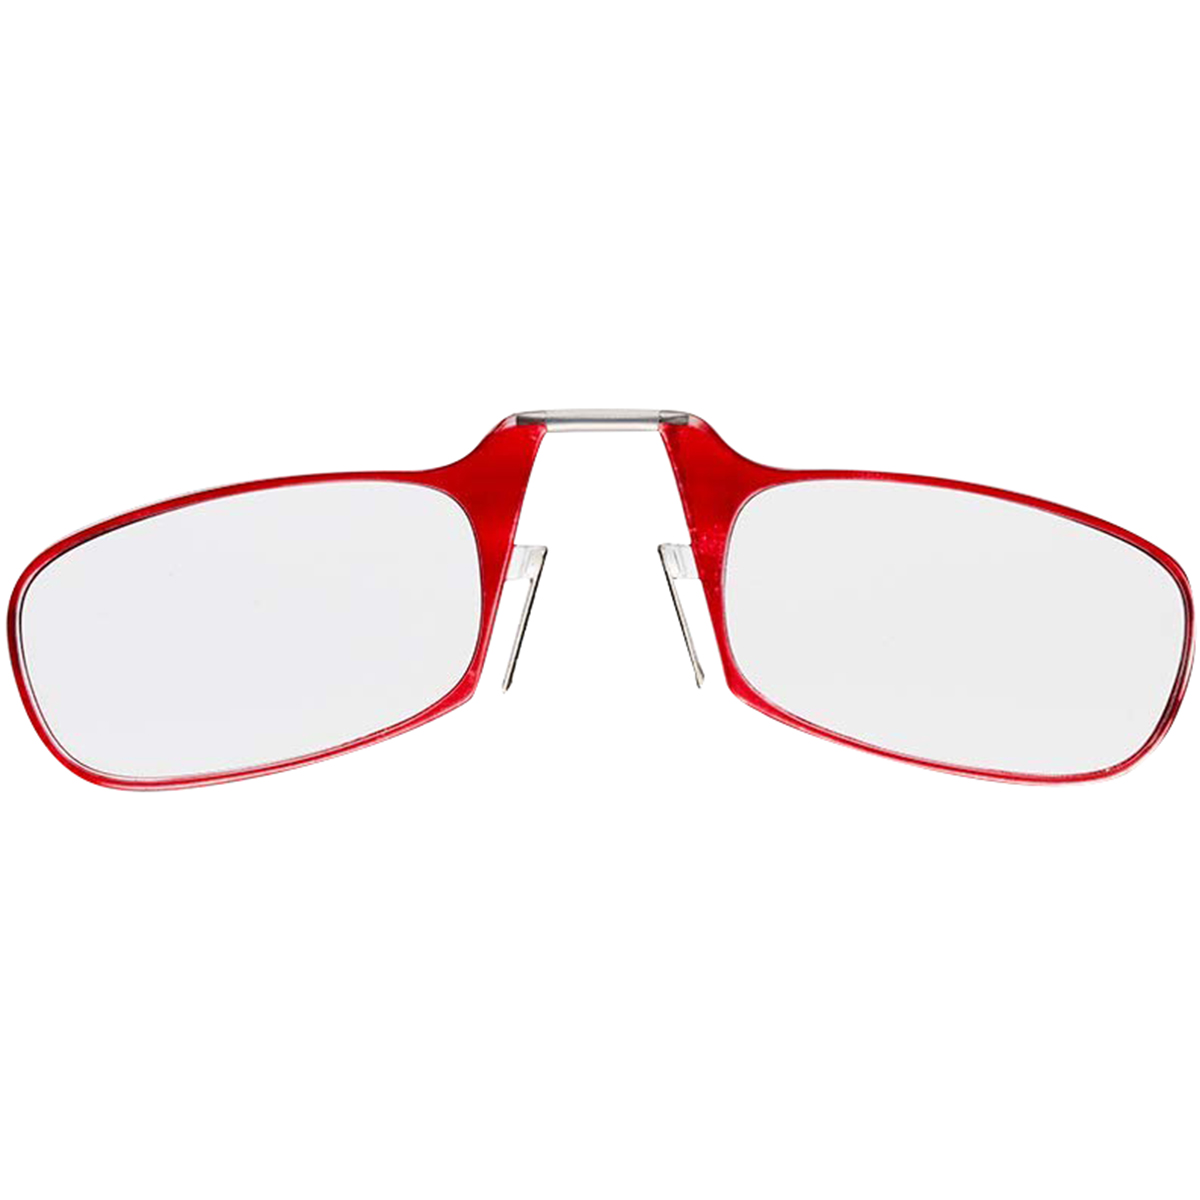 ThinOptics-Secure-Fit-Armless-Ultralight-Reading-Glasses-with-Universal-Pod-Case thumbnail 30